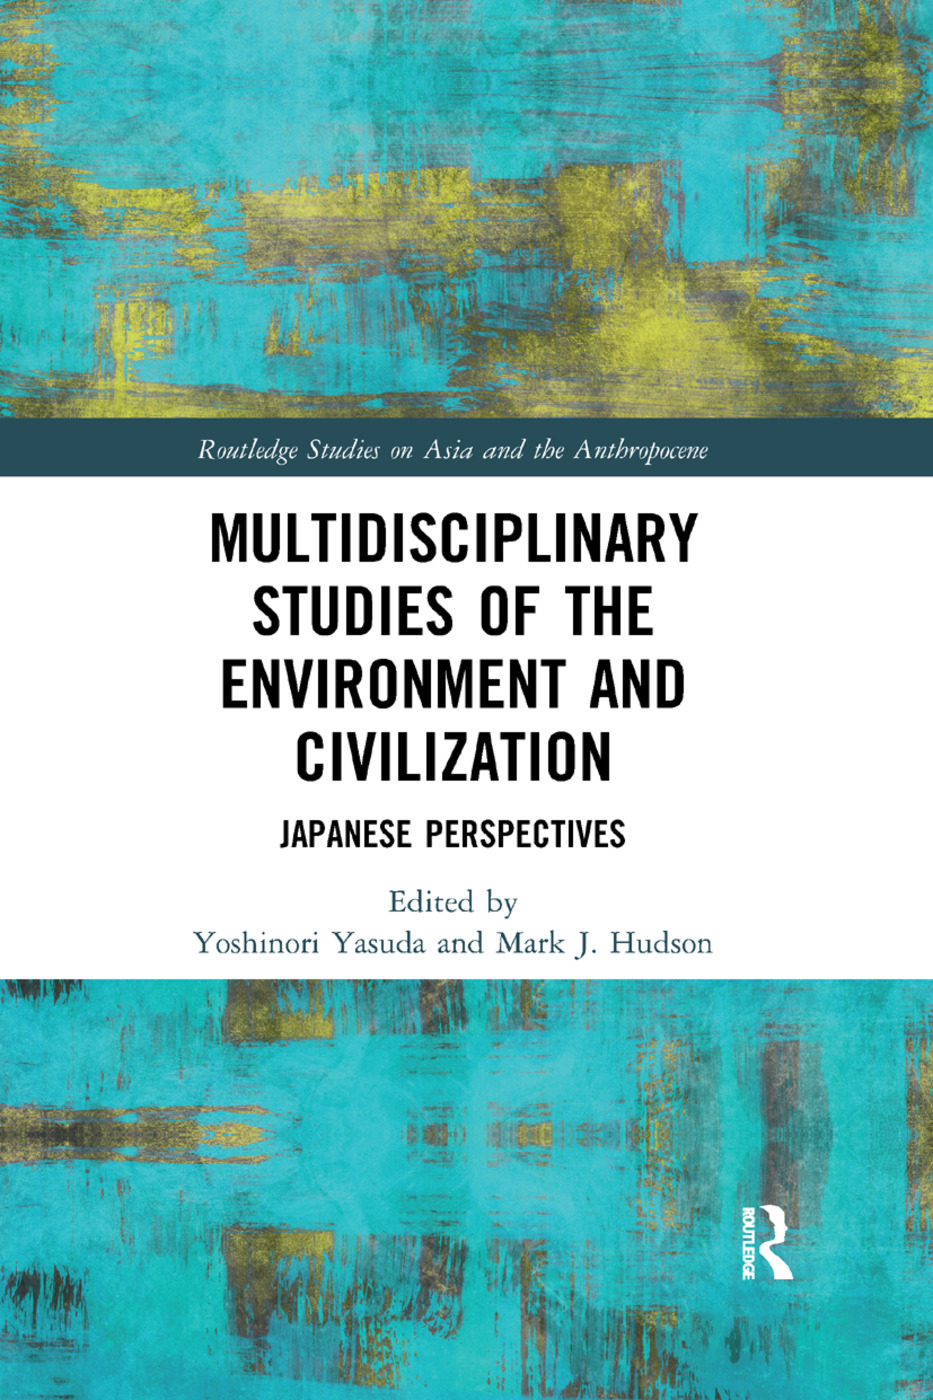 Multidisciplinary Studies of the Environment and Civilization: Japanese Perspectives book cover